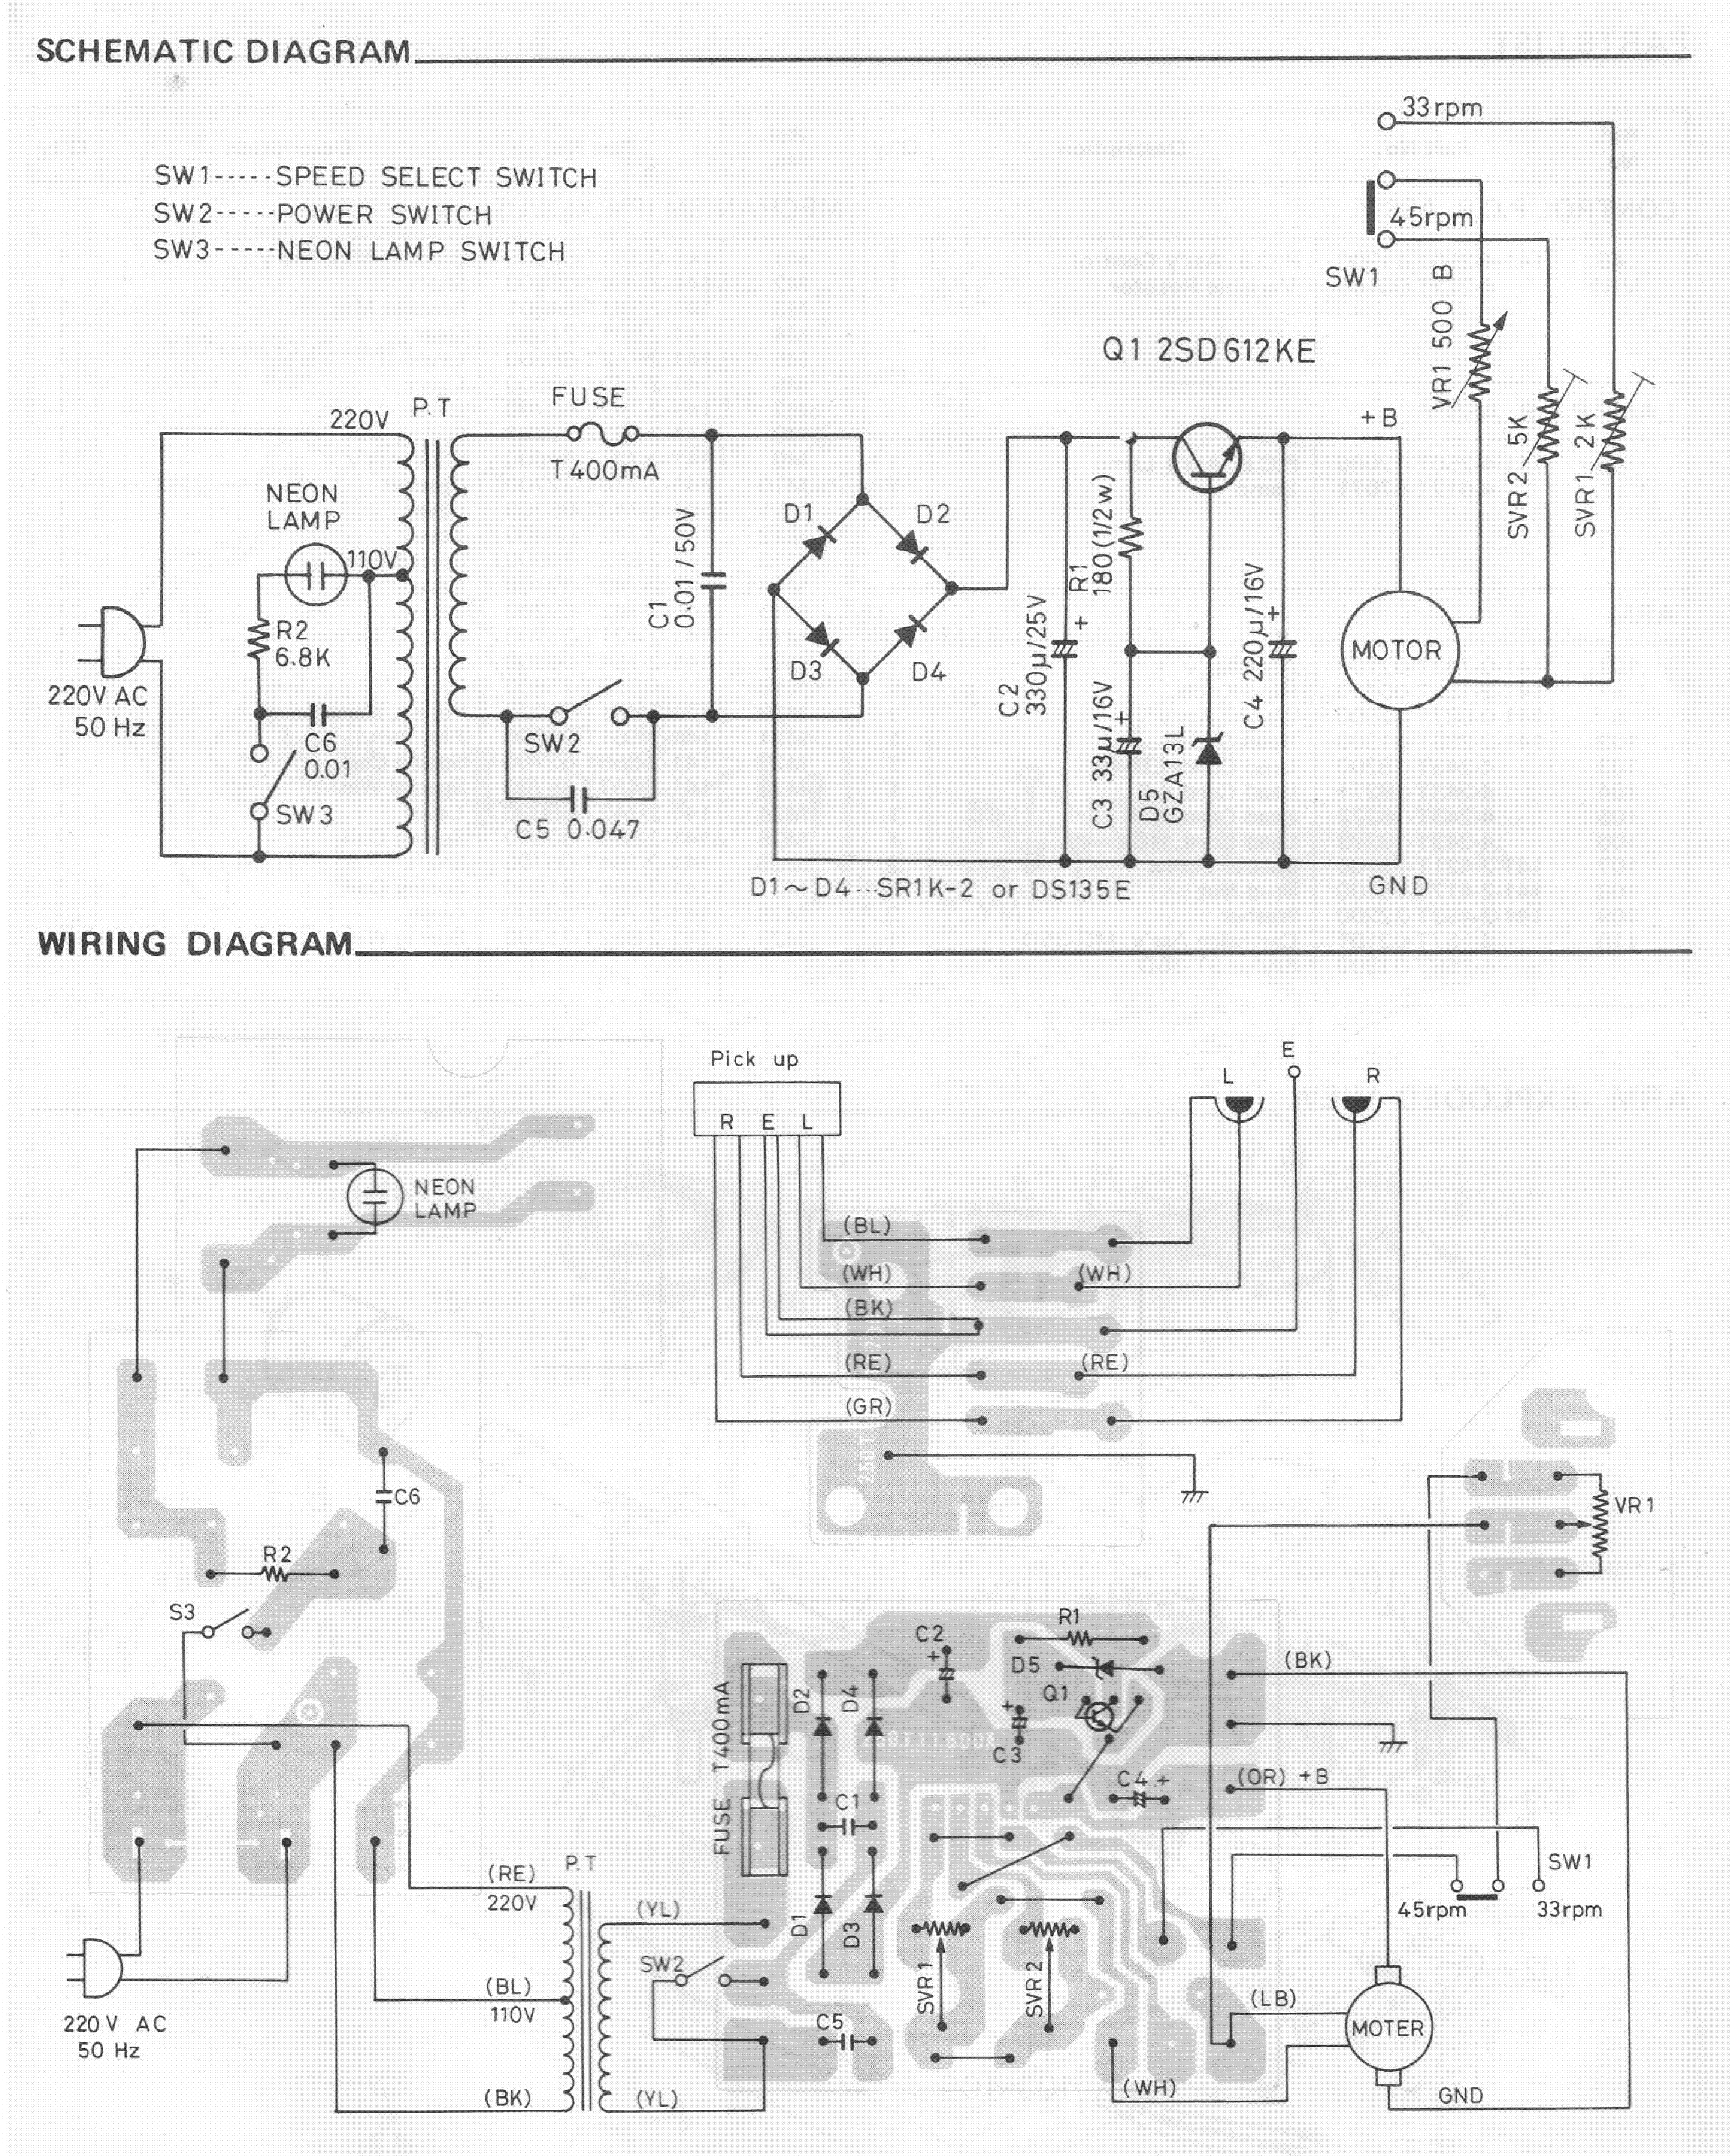 SANYO TP-X1S STEREO TURNTABLE SM Service Manual download